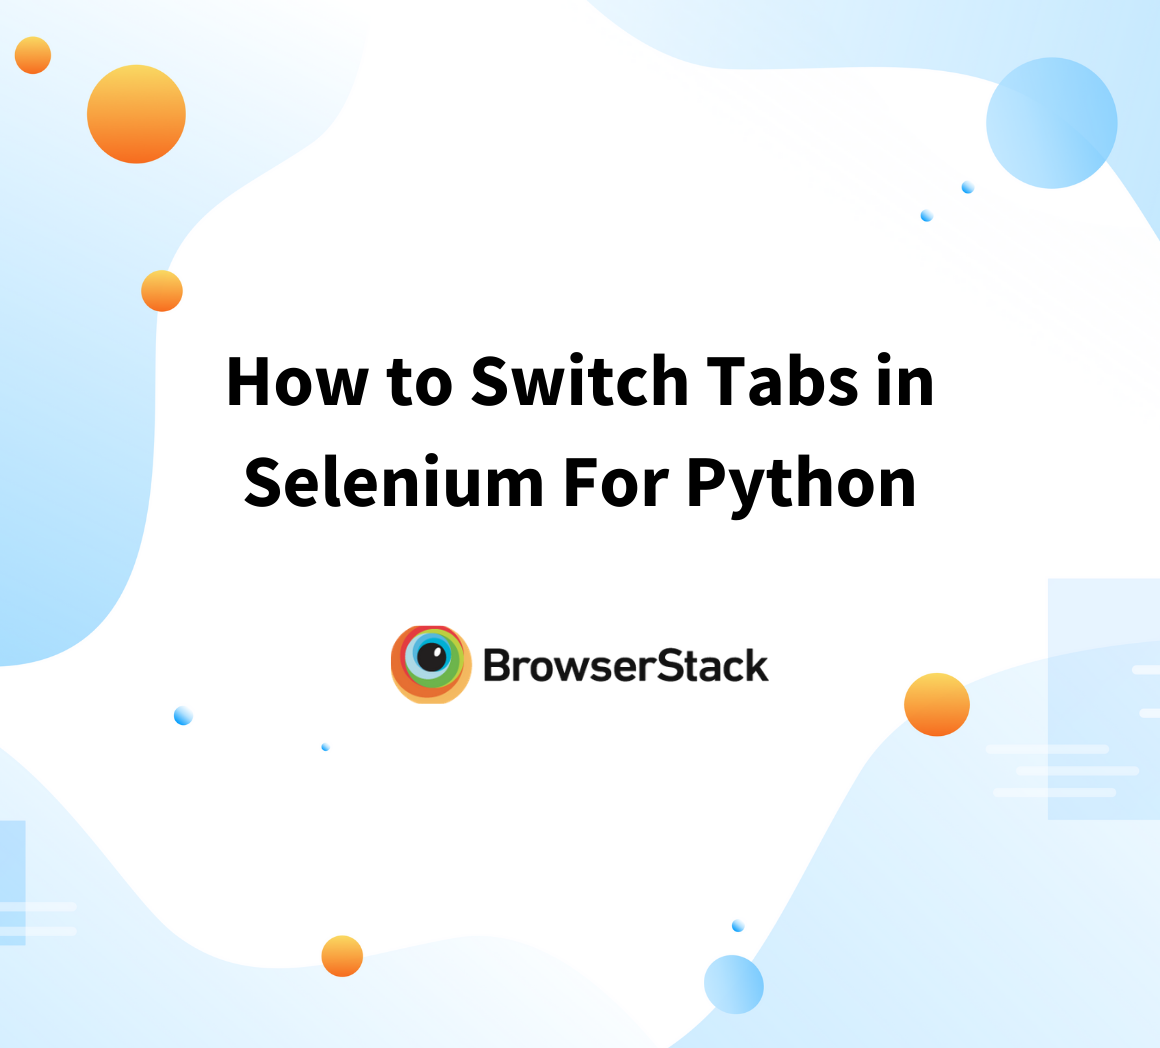 How to switch tabs in Selenium for Python